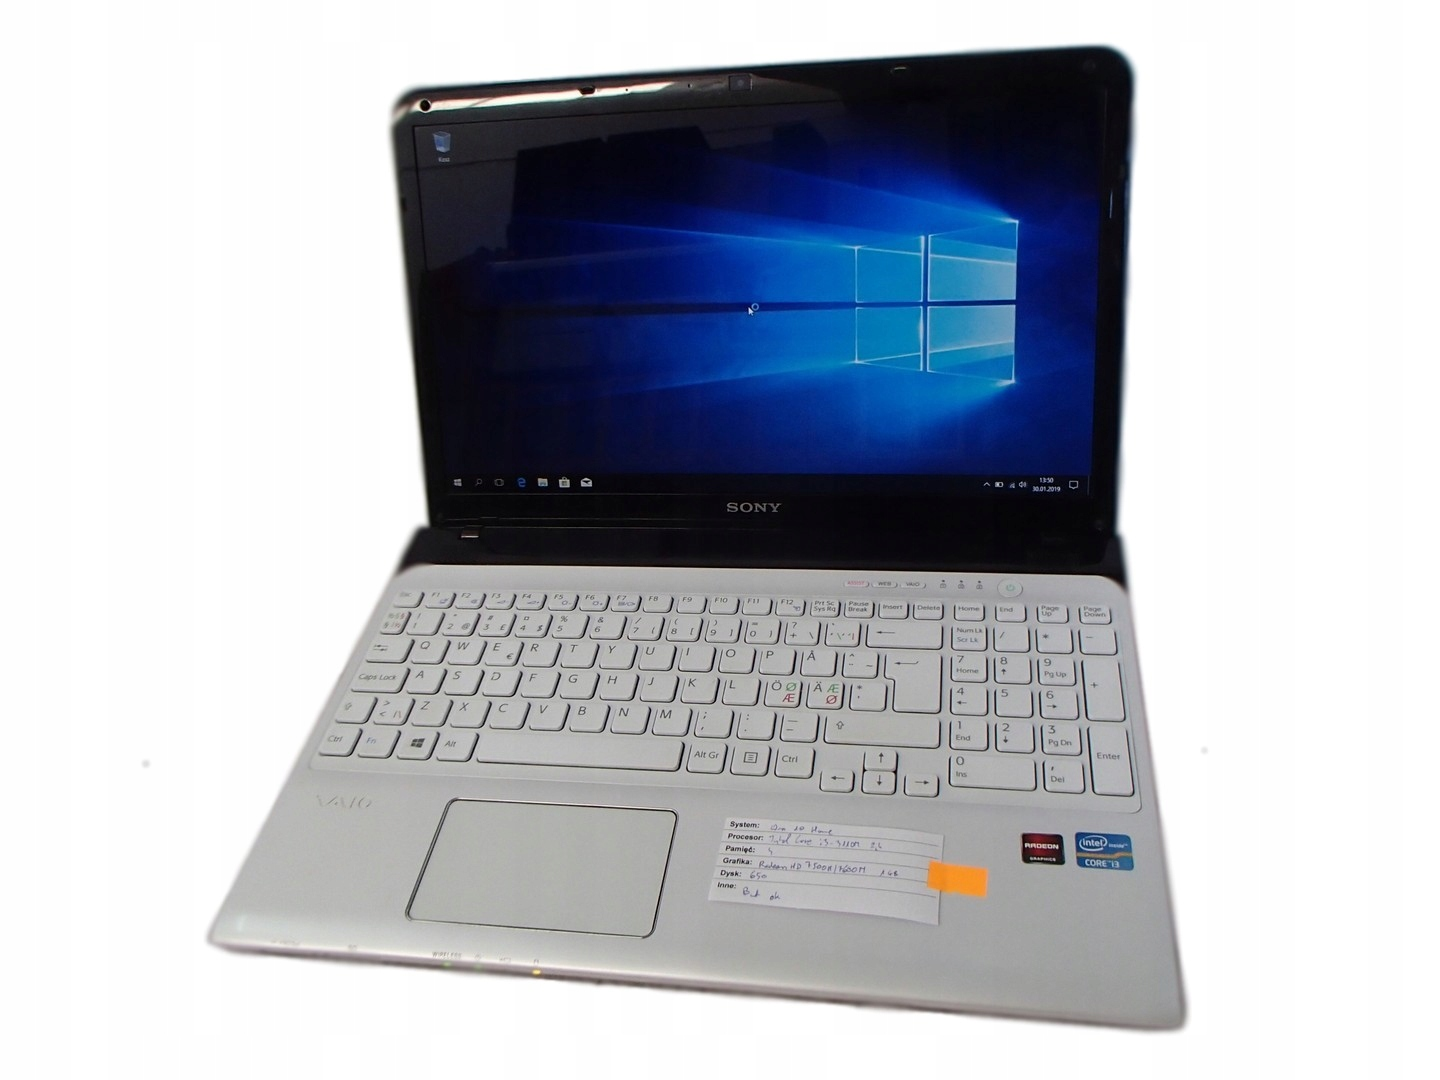 SONY Vaio SVE151G13M i3-3110M 4GB/650GB/Windows 10